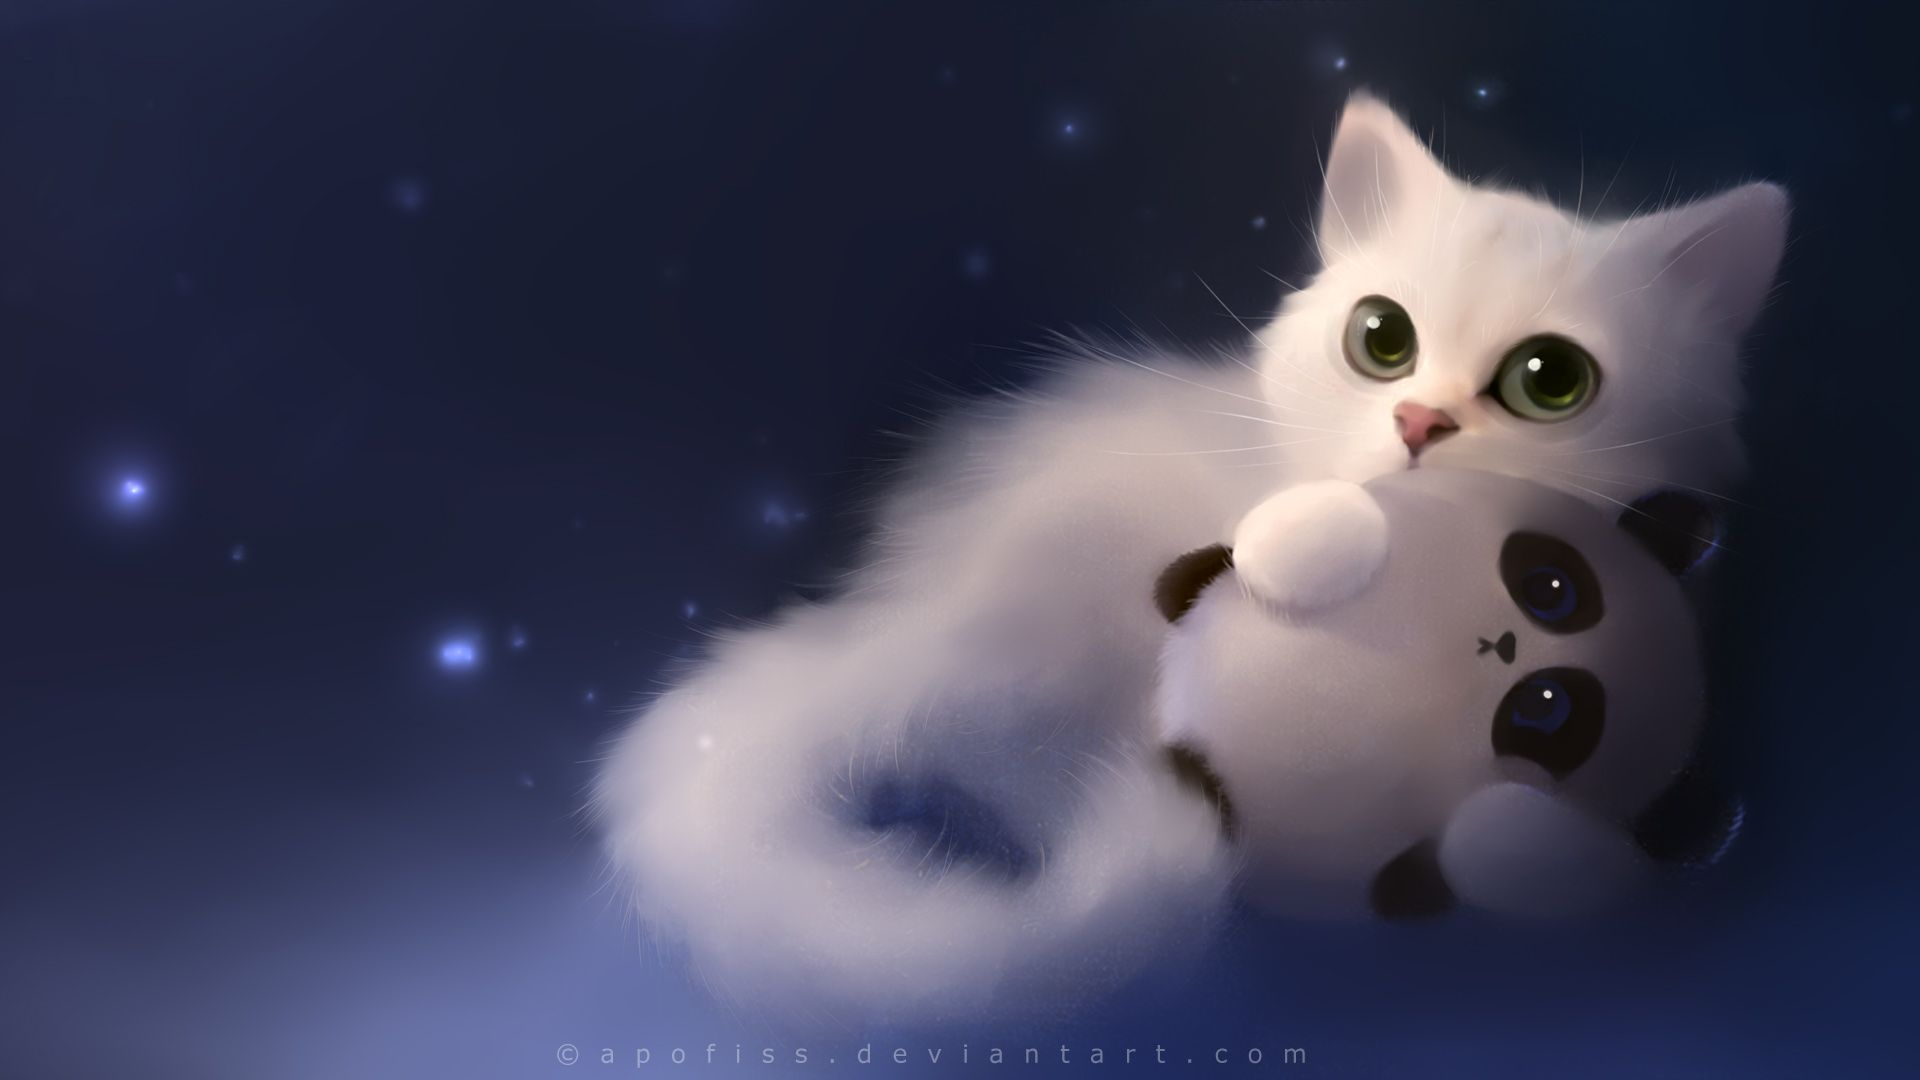 Cute Anime Animals Wallpapers Top Free Cute Anime Animals Backgrounds Wallpaperaccess